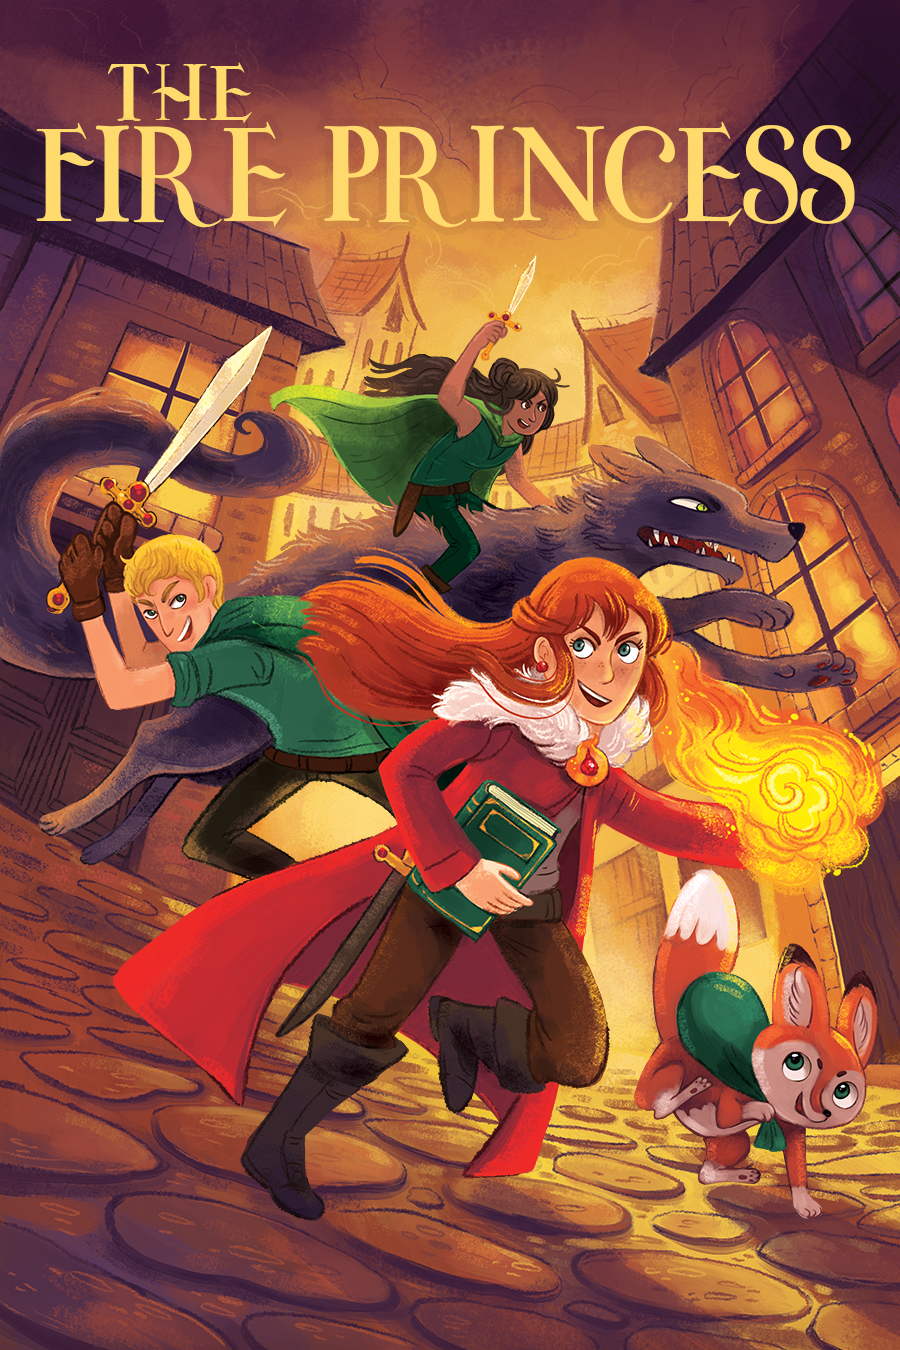 web_TheFirePrincesstext_Cover_teen_middlegrade_fantasy_action_bookcovers_fire_femaleprotagonist_fox_swords_city.jpg